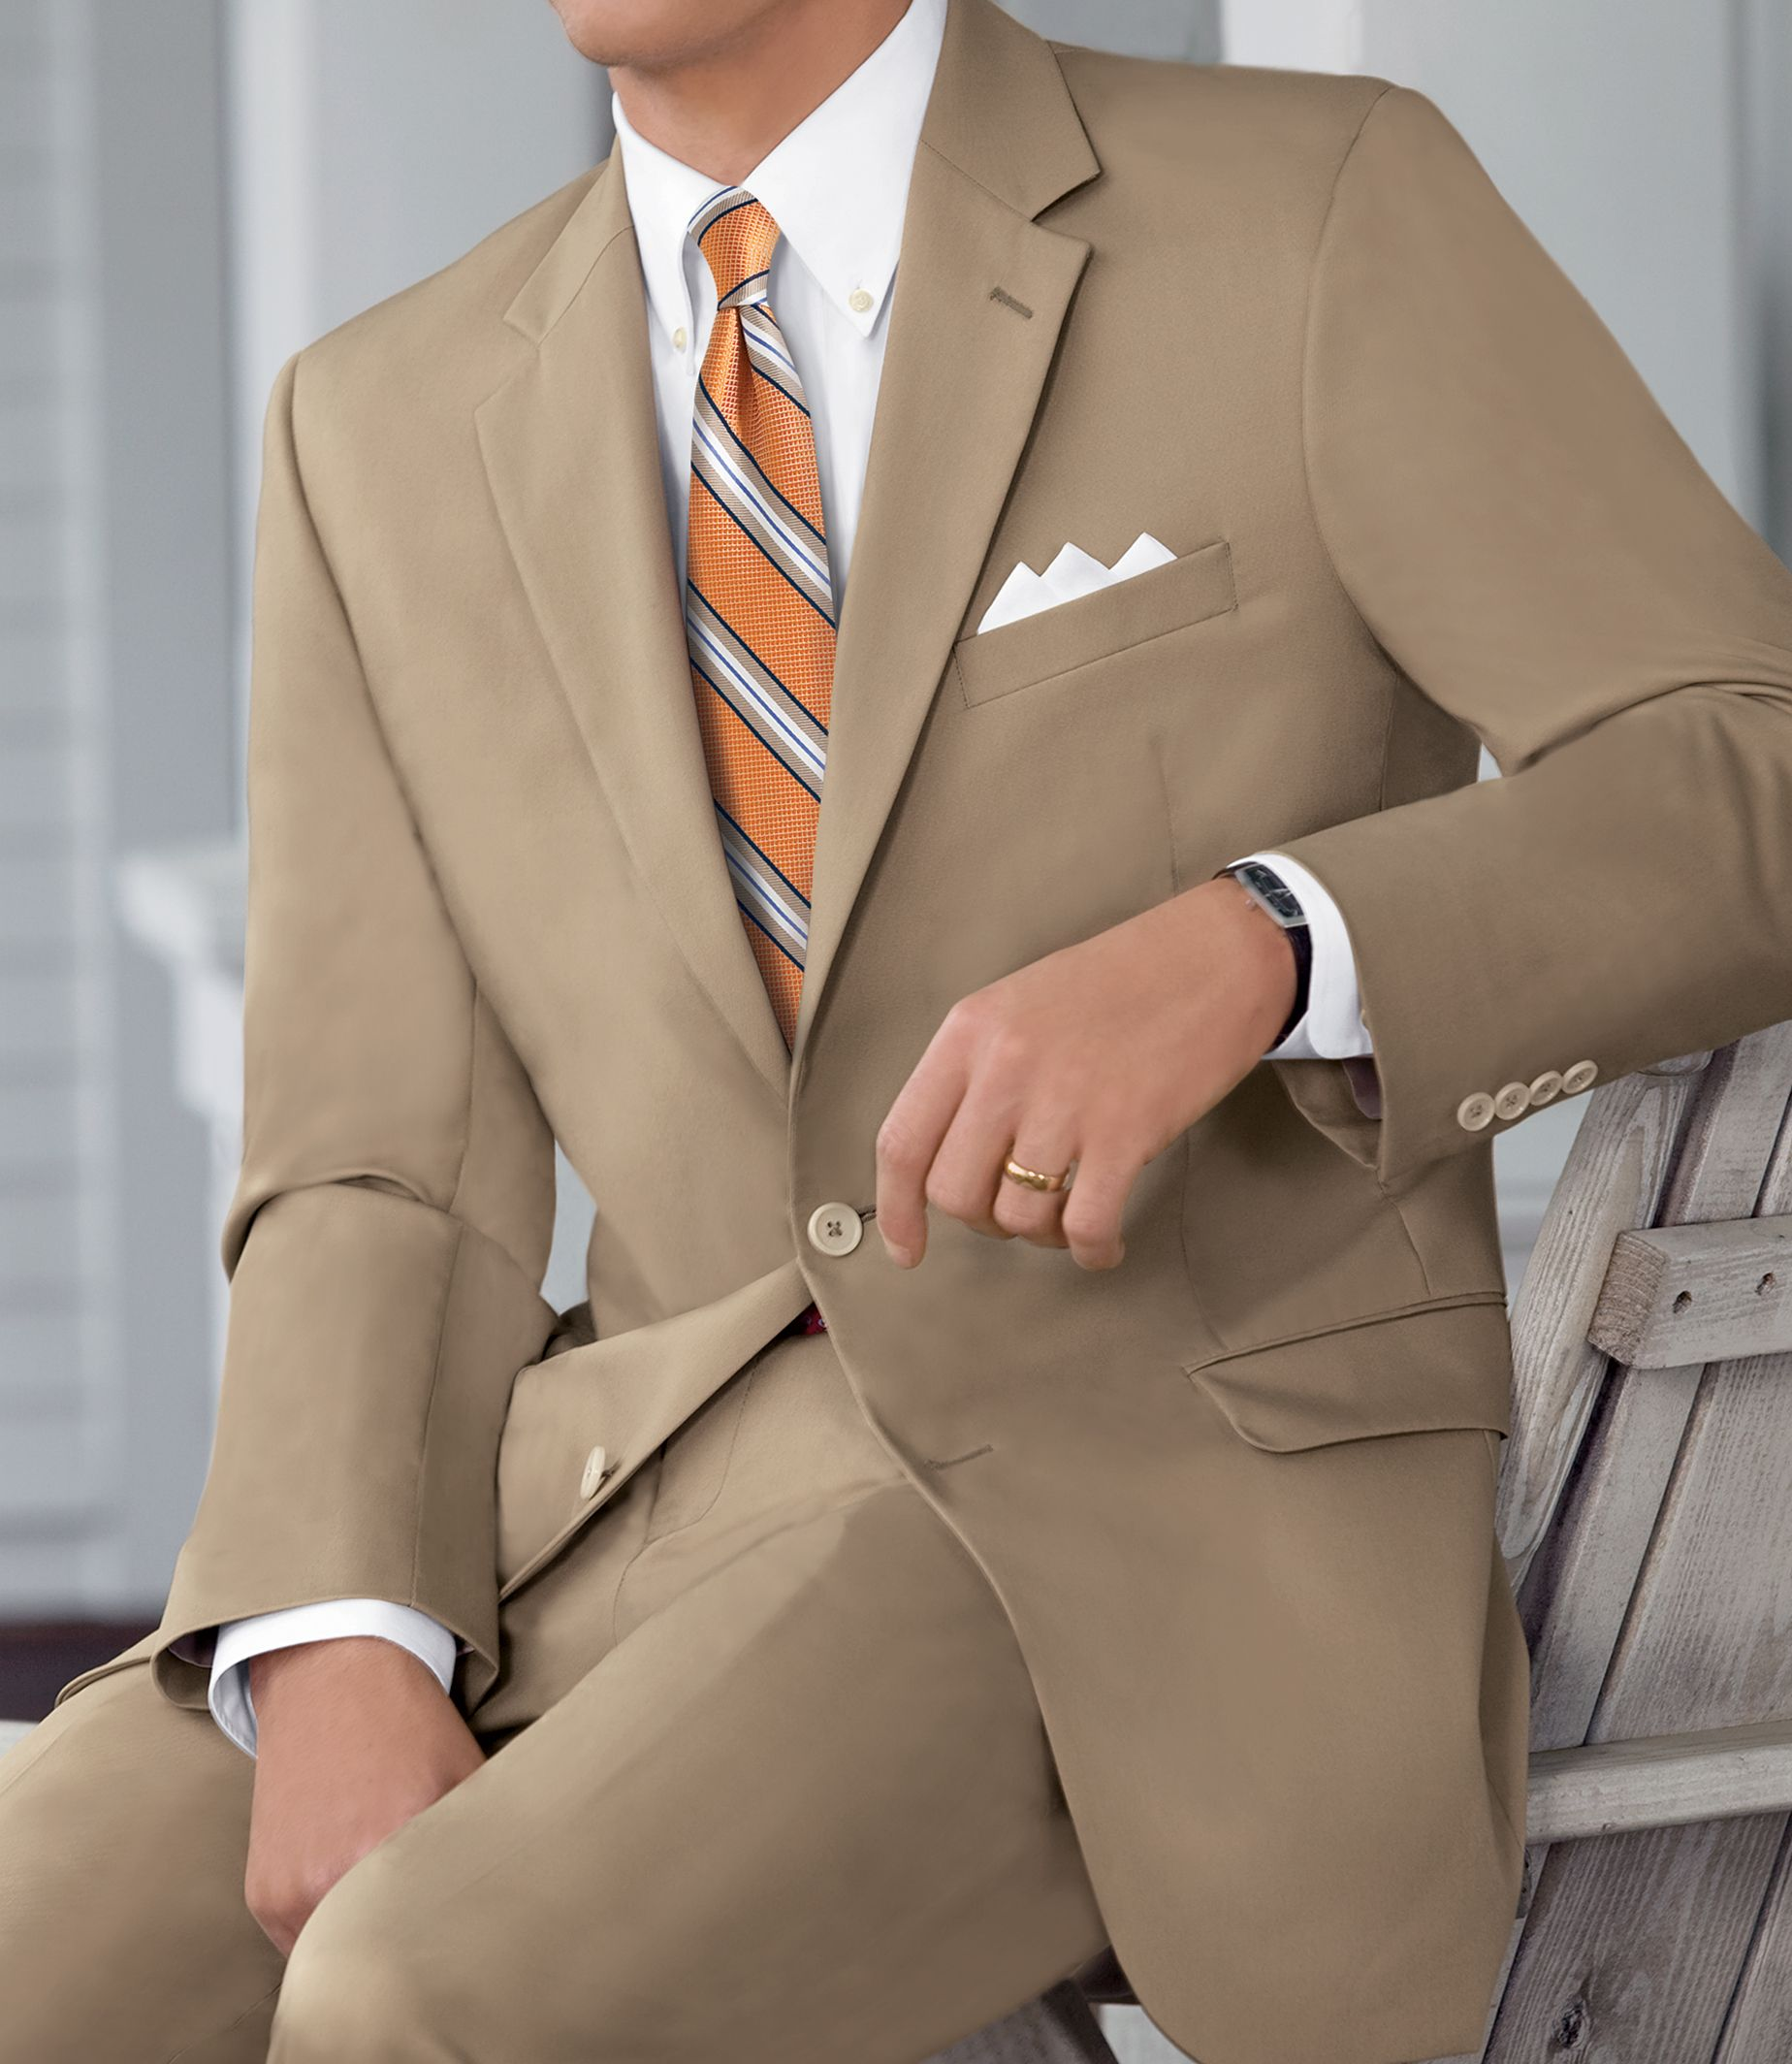 Men's Suit Natural Stretch 2-Button Poplin Suit- Sizes 44 X-Long-52 JoS. A. Bank - TAN - 52 - LONG